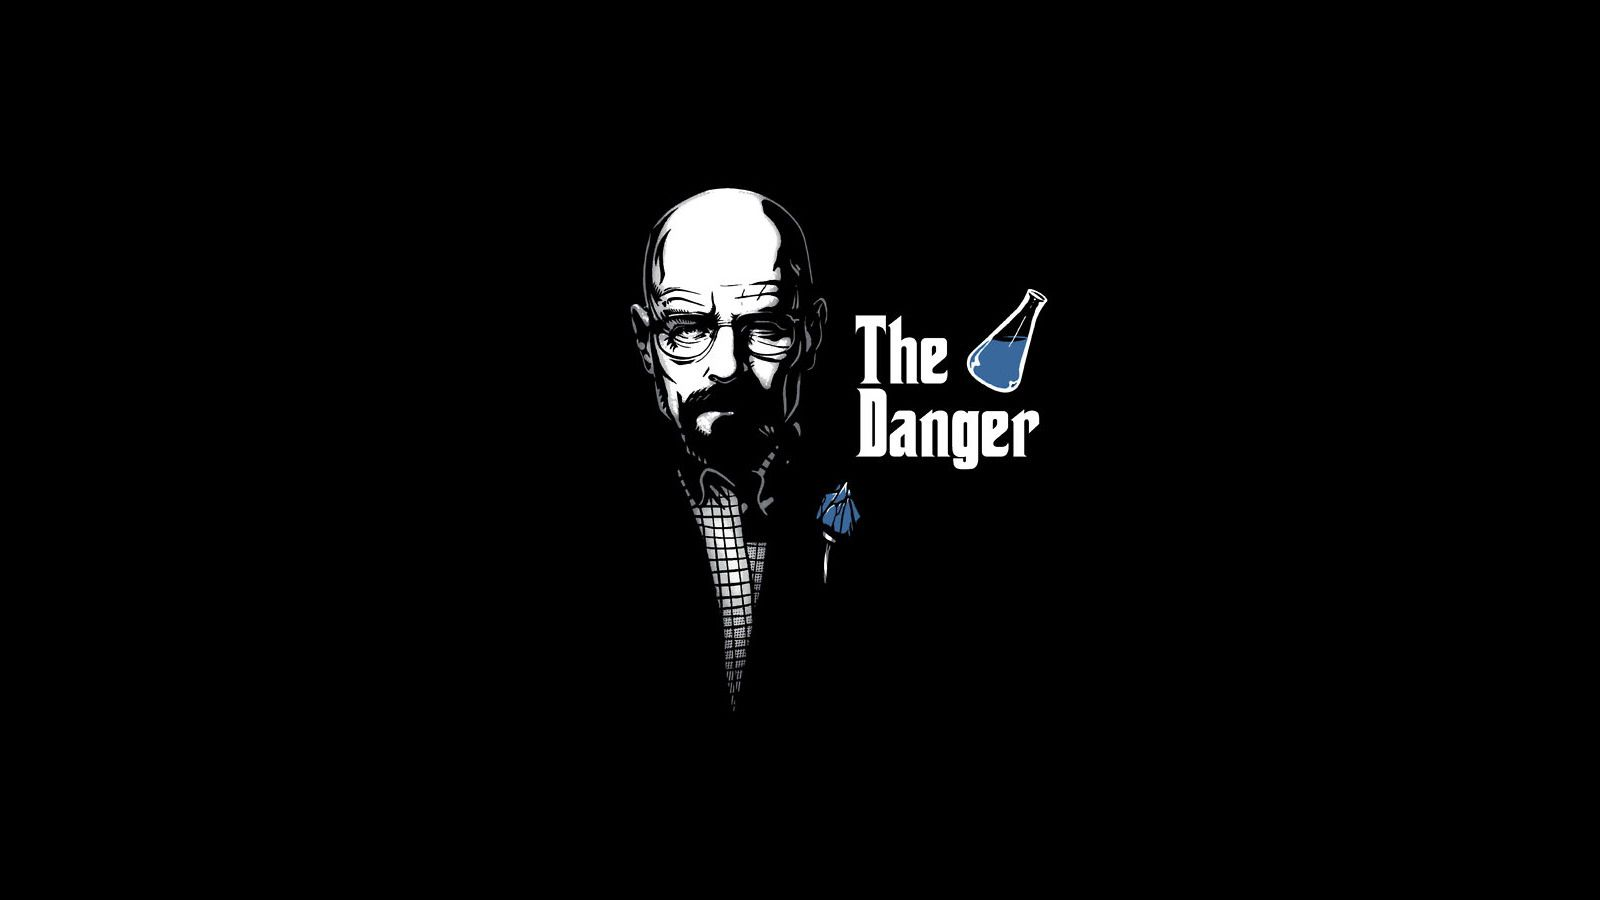 breaking-bad-wallpapers-hd-to-download-for-free_06